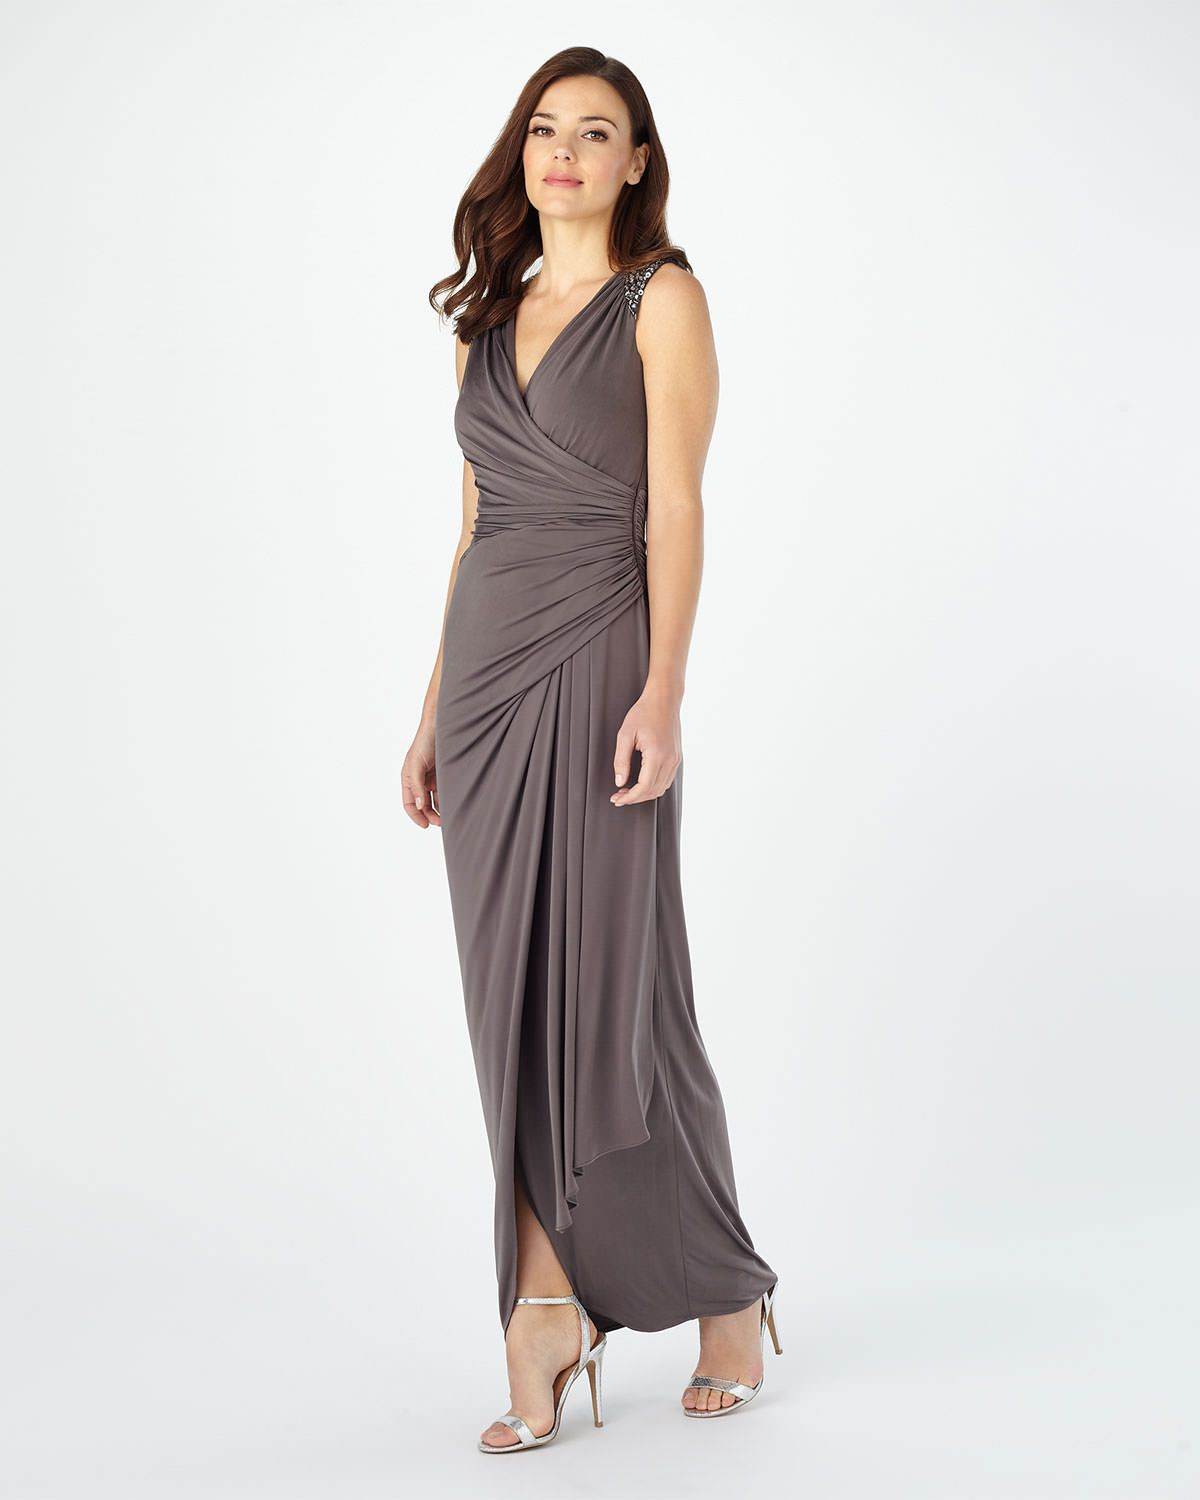 130 Up To Size 20 Phase Eight Anoushka Full Length Dress Grey